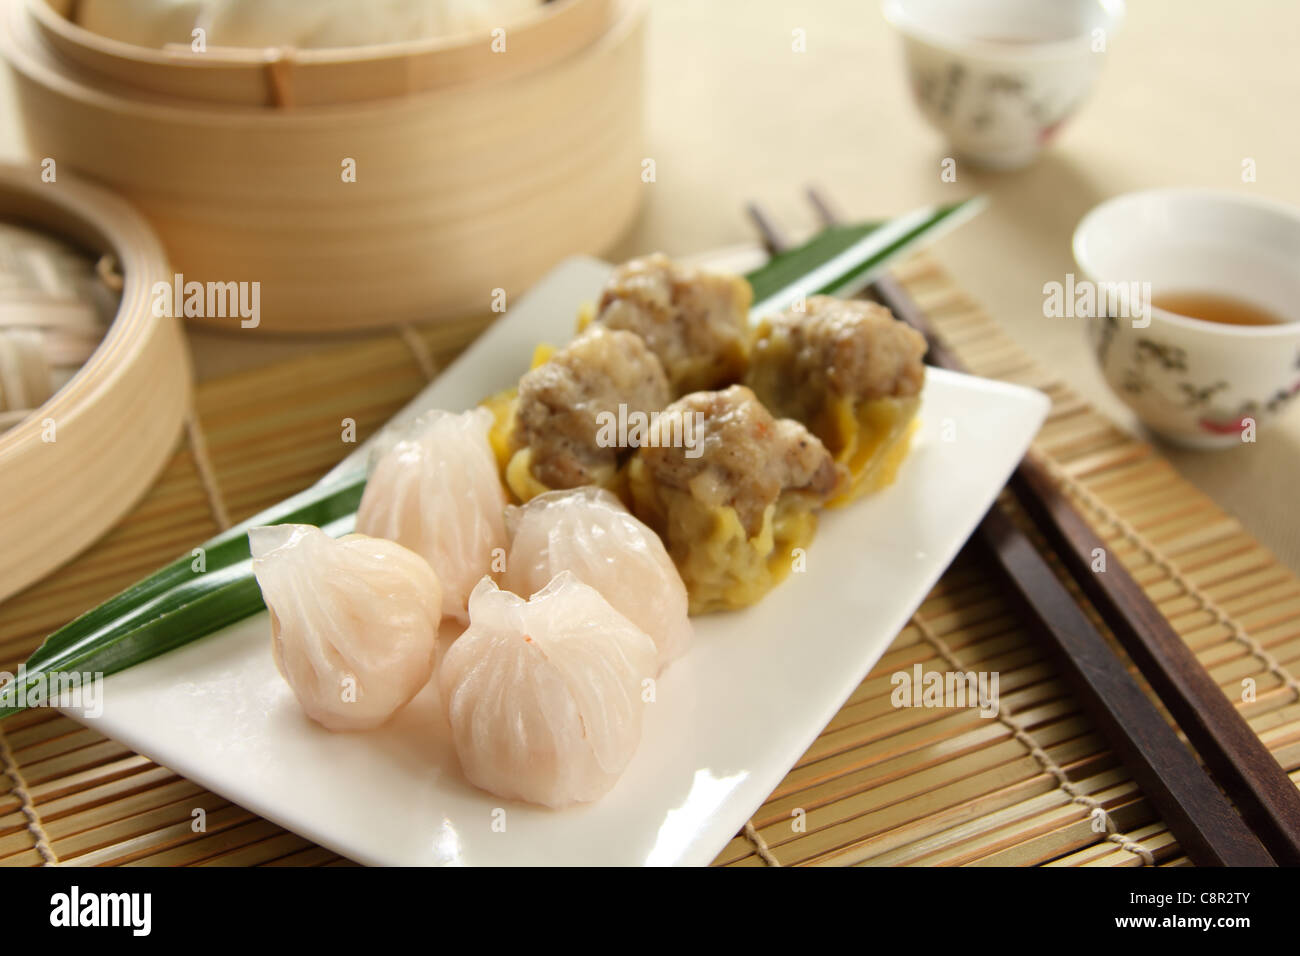 Chinese food, Dimsum - Stock Image